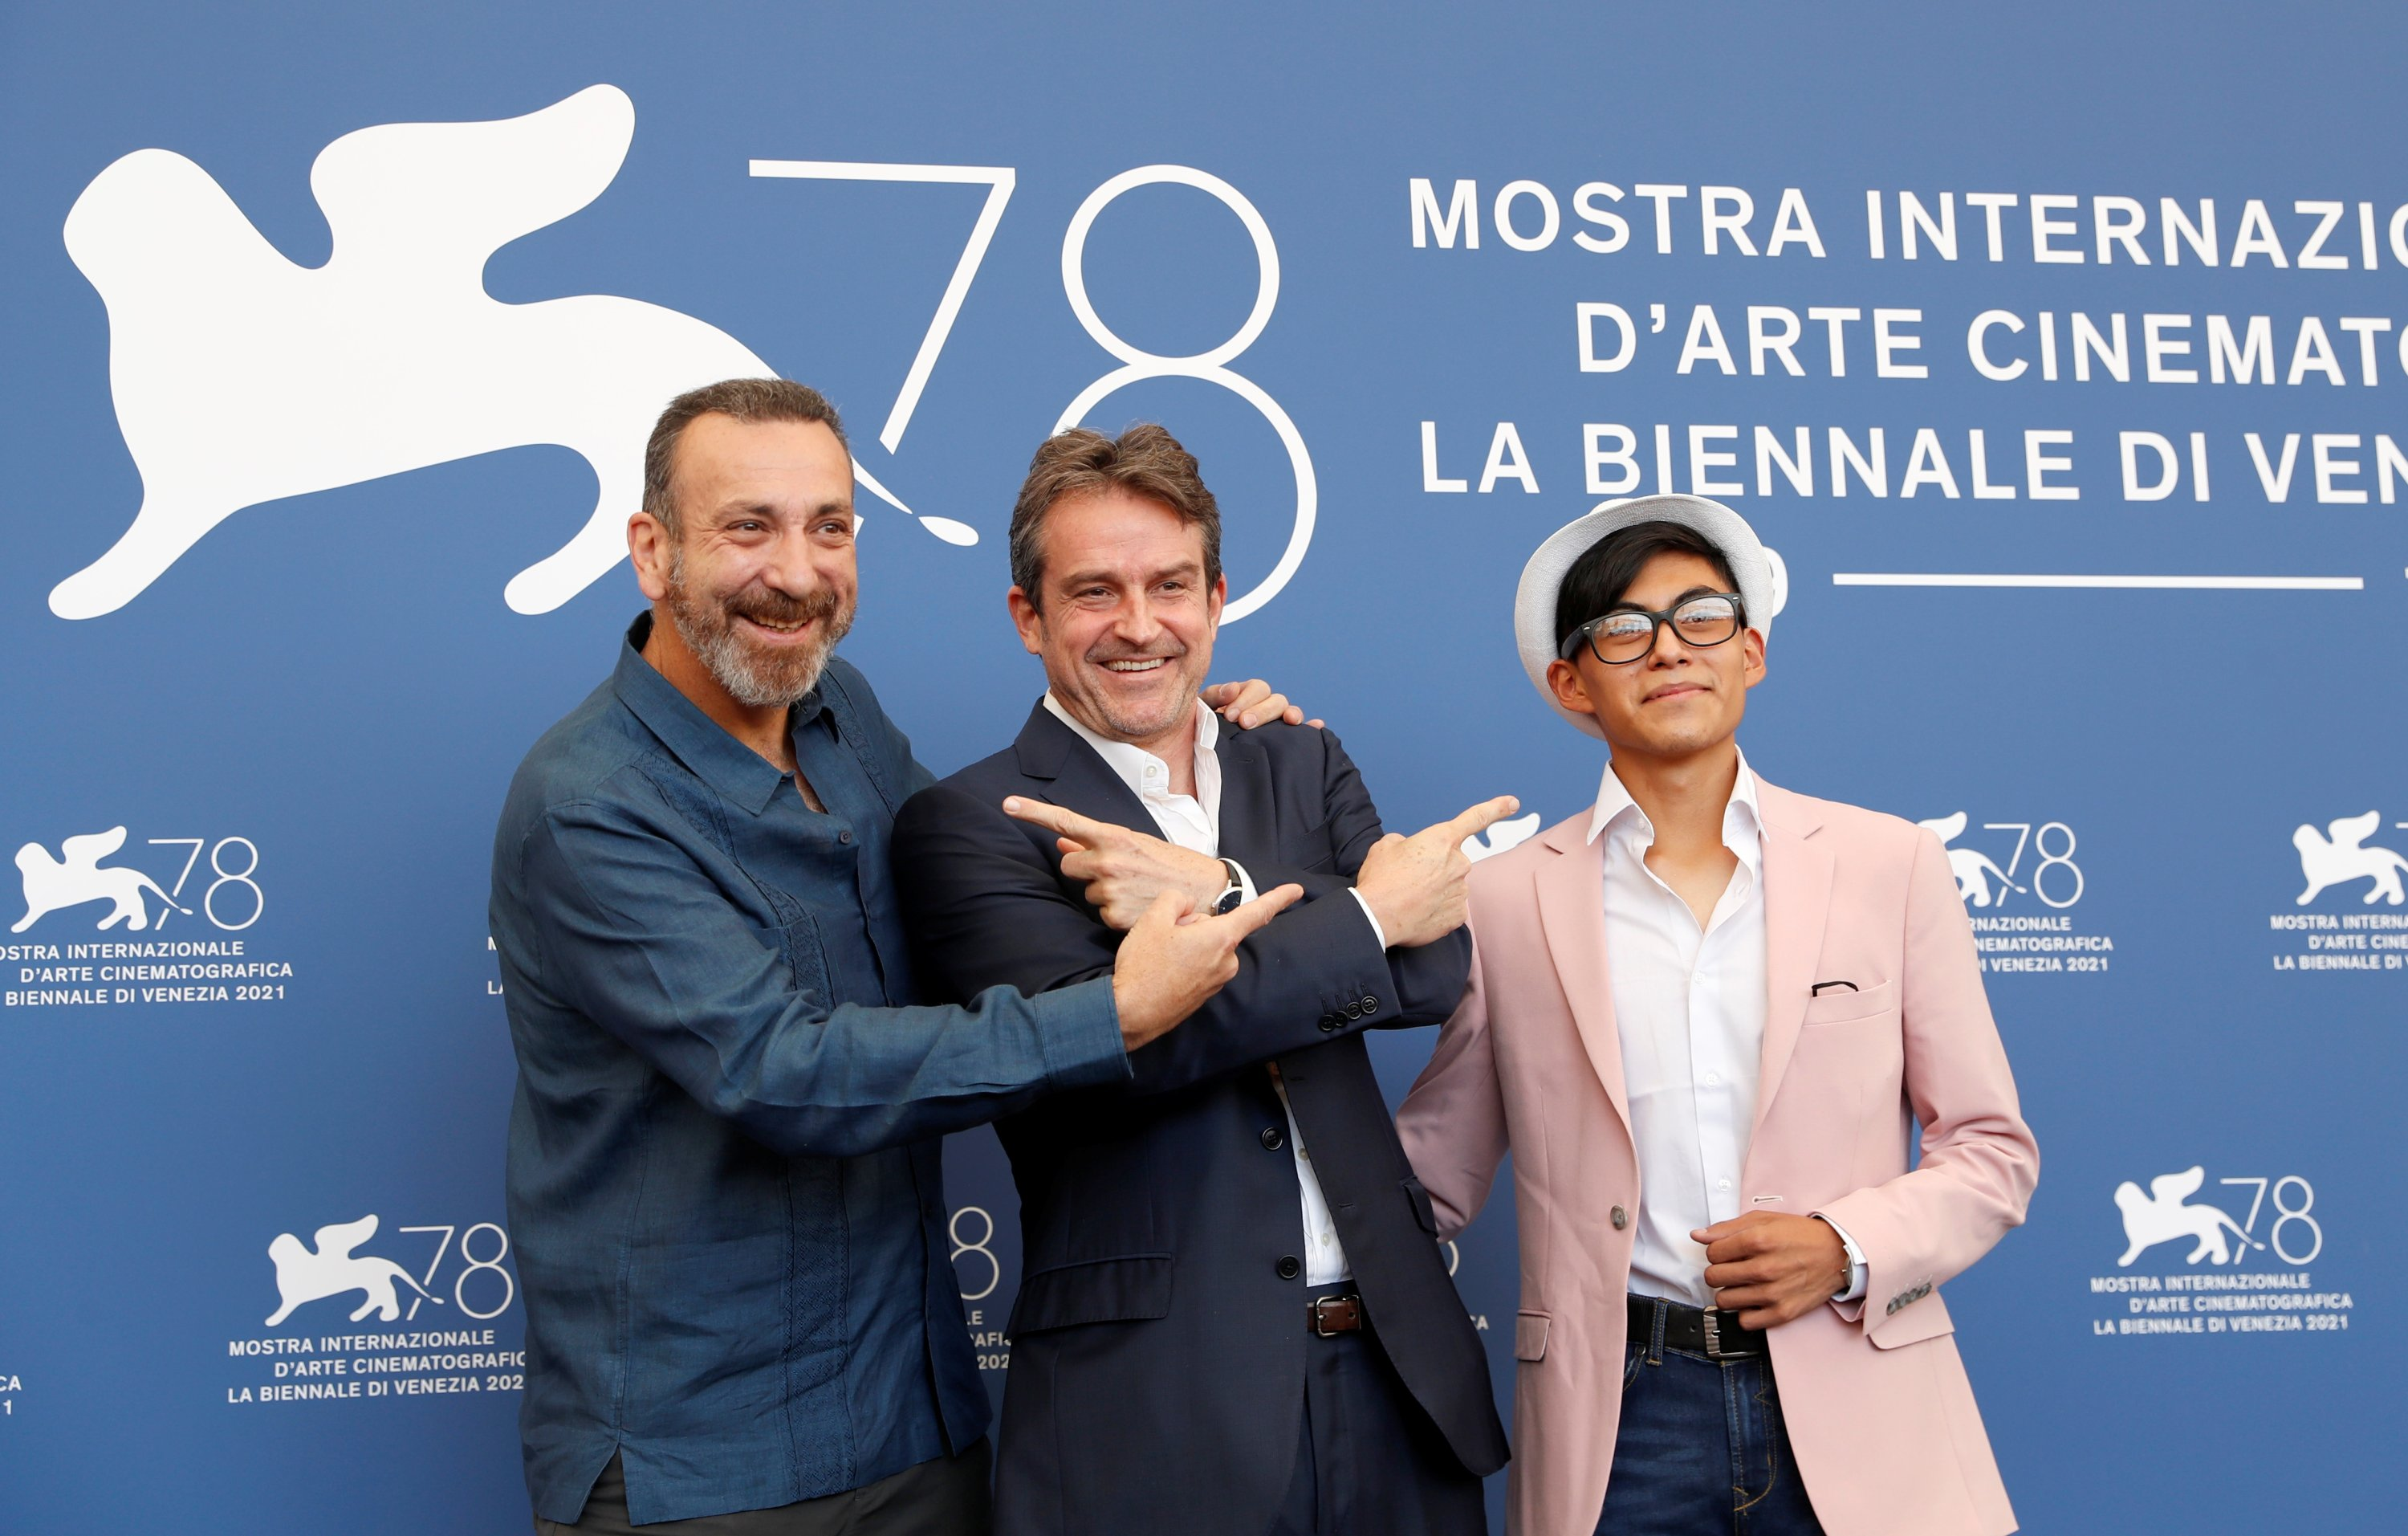 Director Lorenzo Vigas (C) and actors Hernan Mendoza (L) and Hatzin Navarrete pose during a photocall for the film 'The Box' at the 78th Venice Film Festival, Venice, Italy. (Reuters Photo)